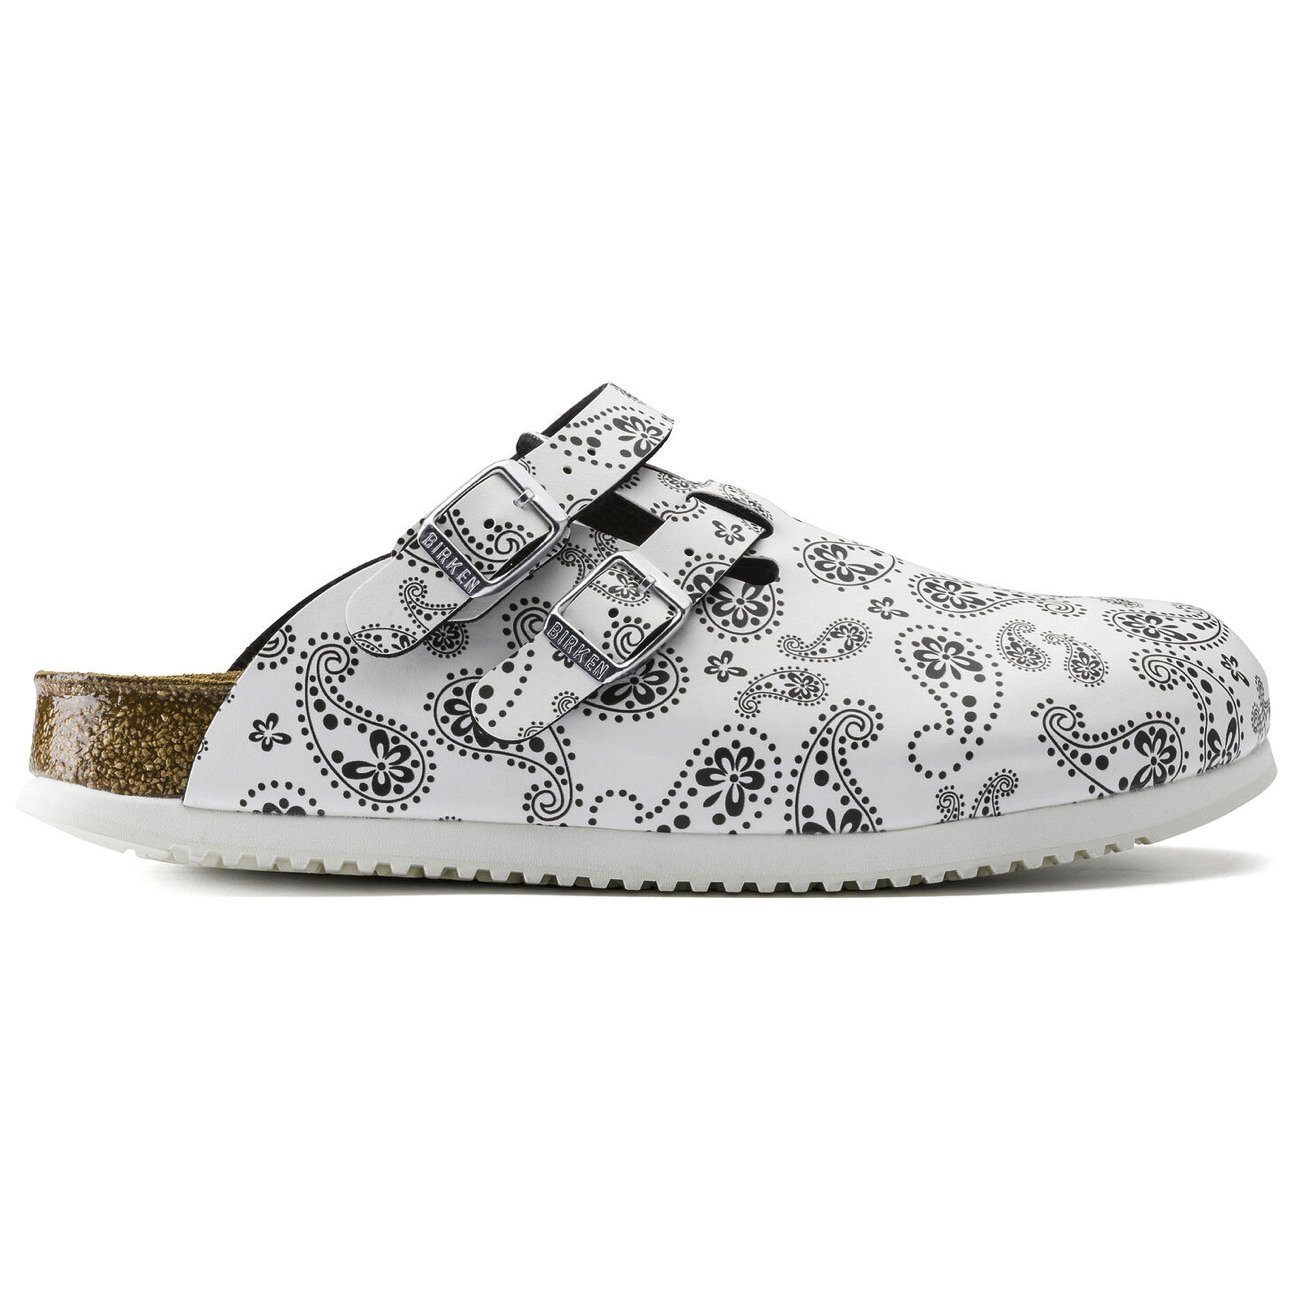 Birkenstock Professional, Kay Supergrip Birko-Flor, Narrow Fit, Paisley Black/White Clogs Birkenstock Professional Paisley Black/White 35